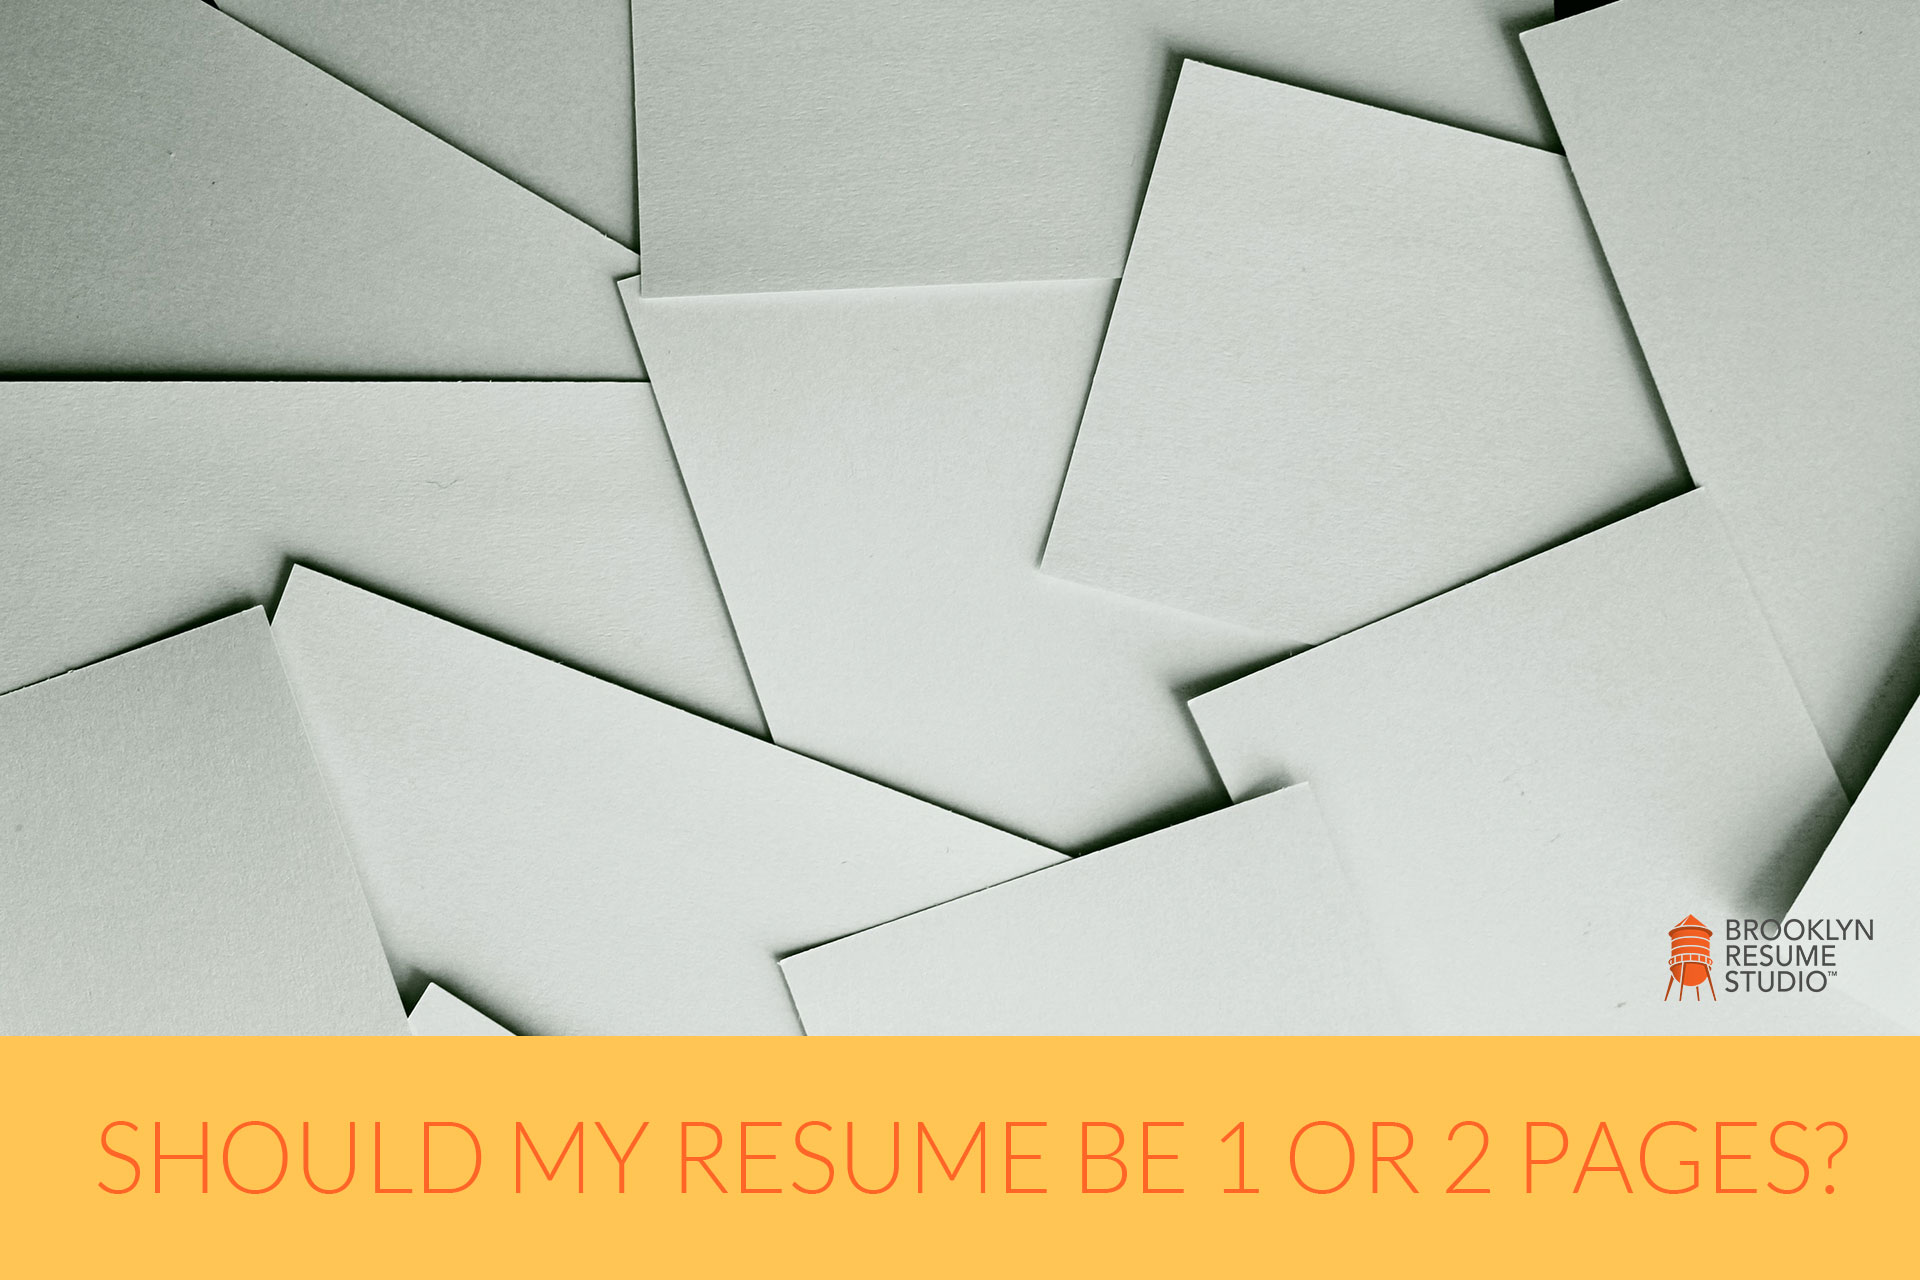 How Long Should a Resume Be?